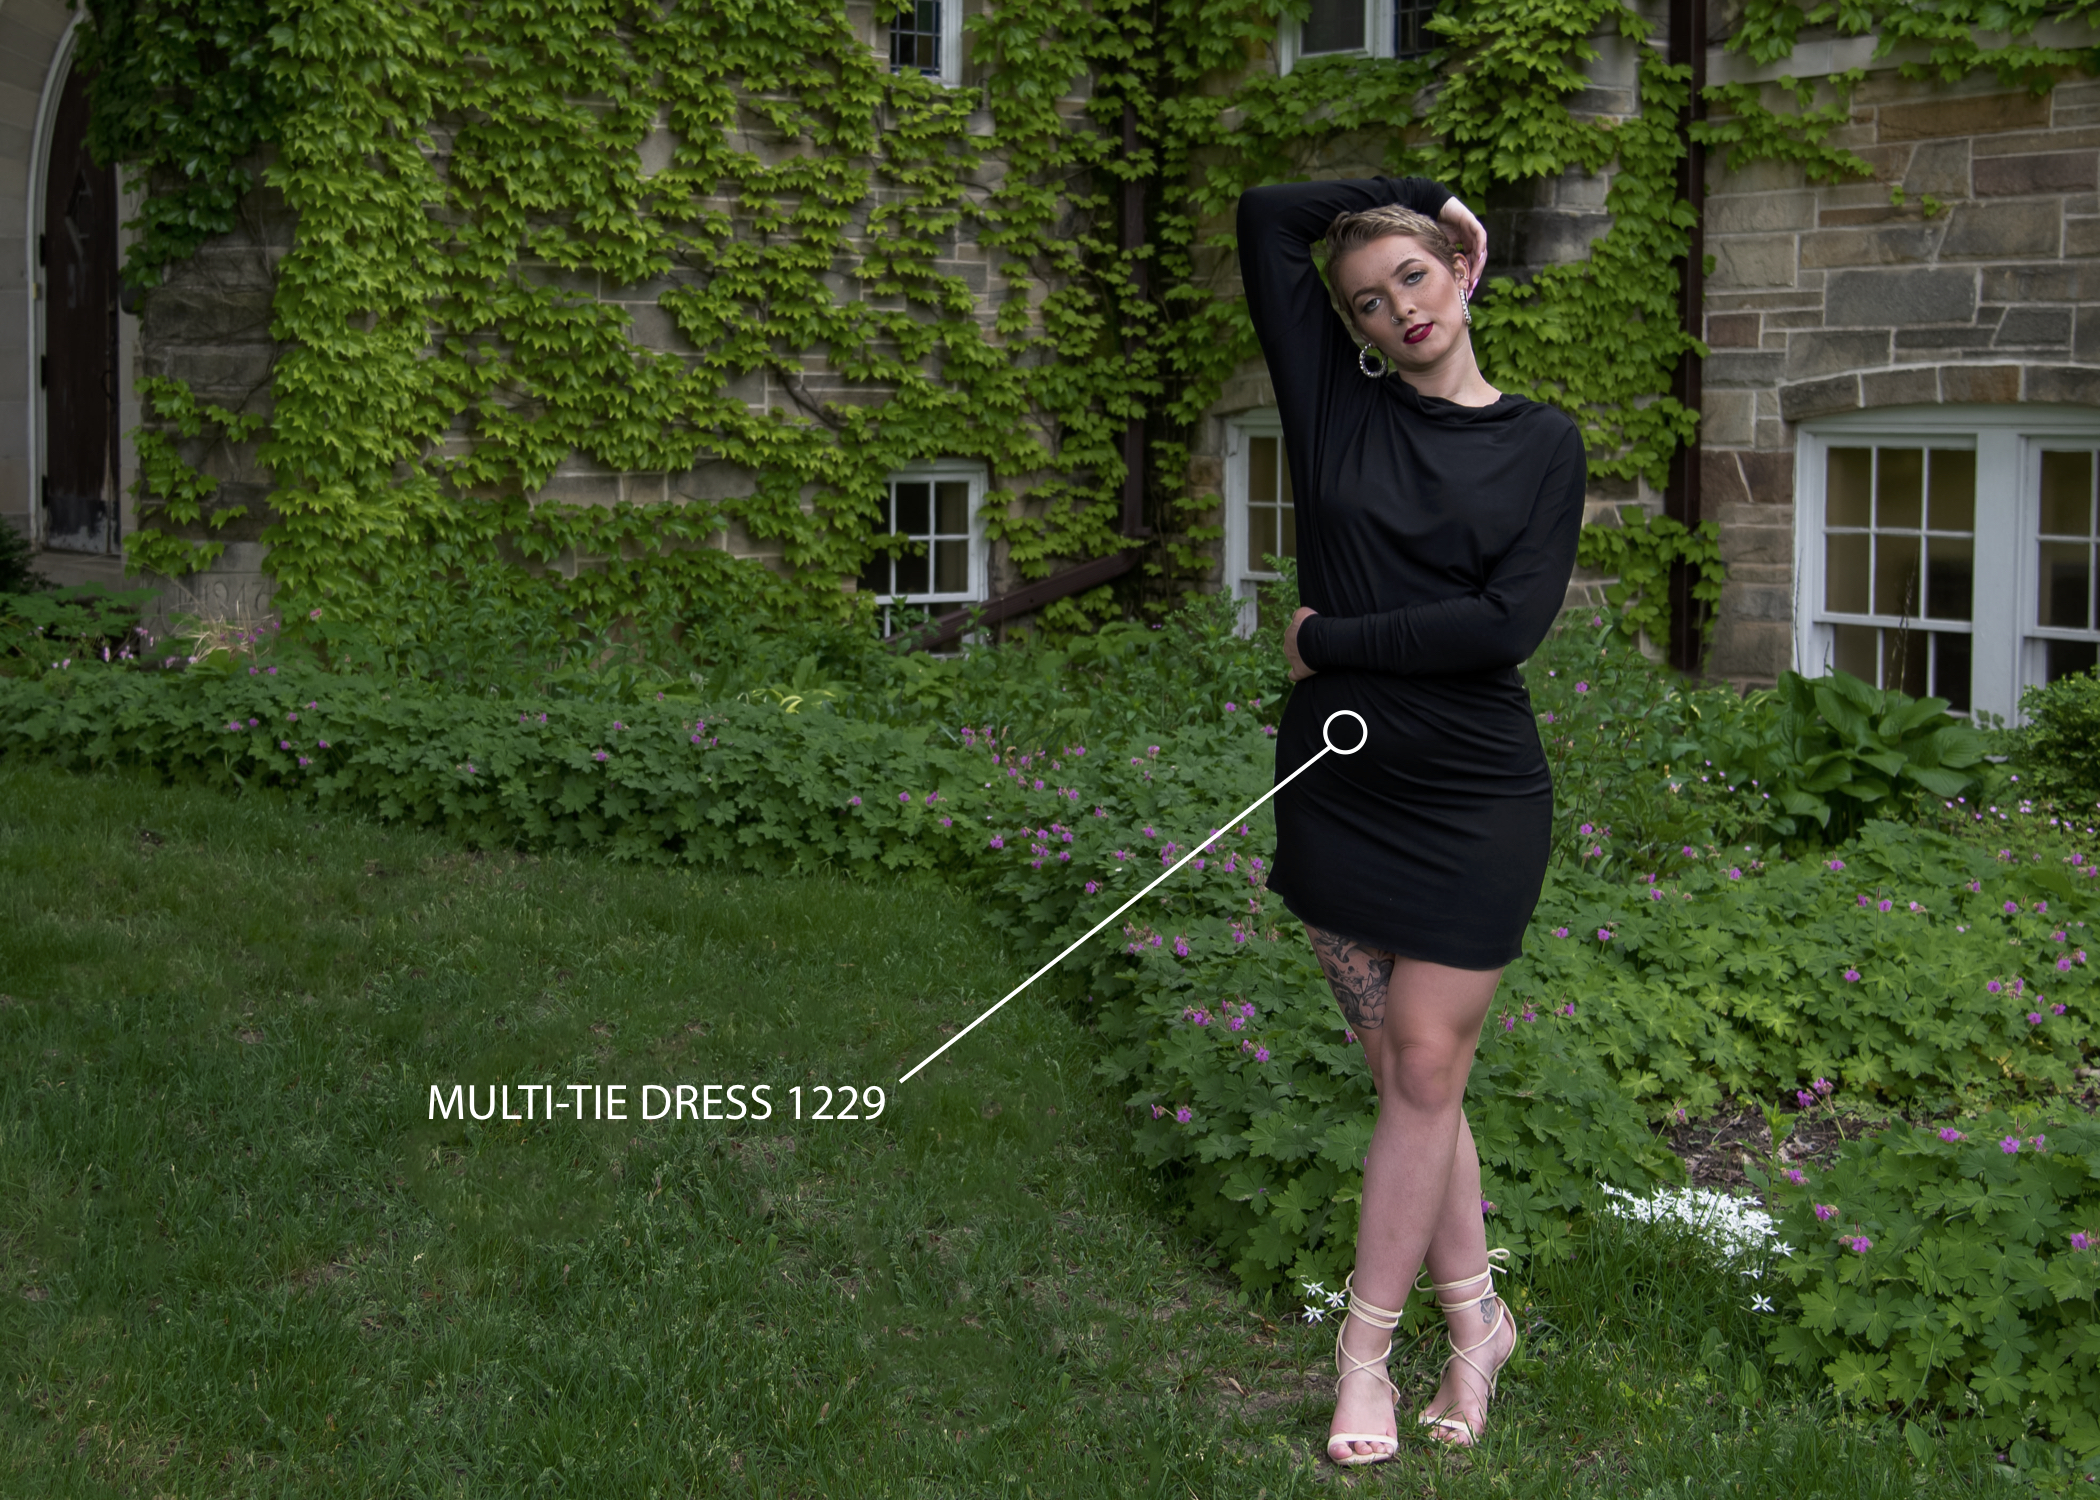 The beautiful Multi-Tie dress can be worn in various ways and is perfect for any location.